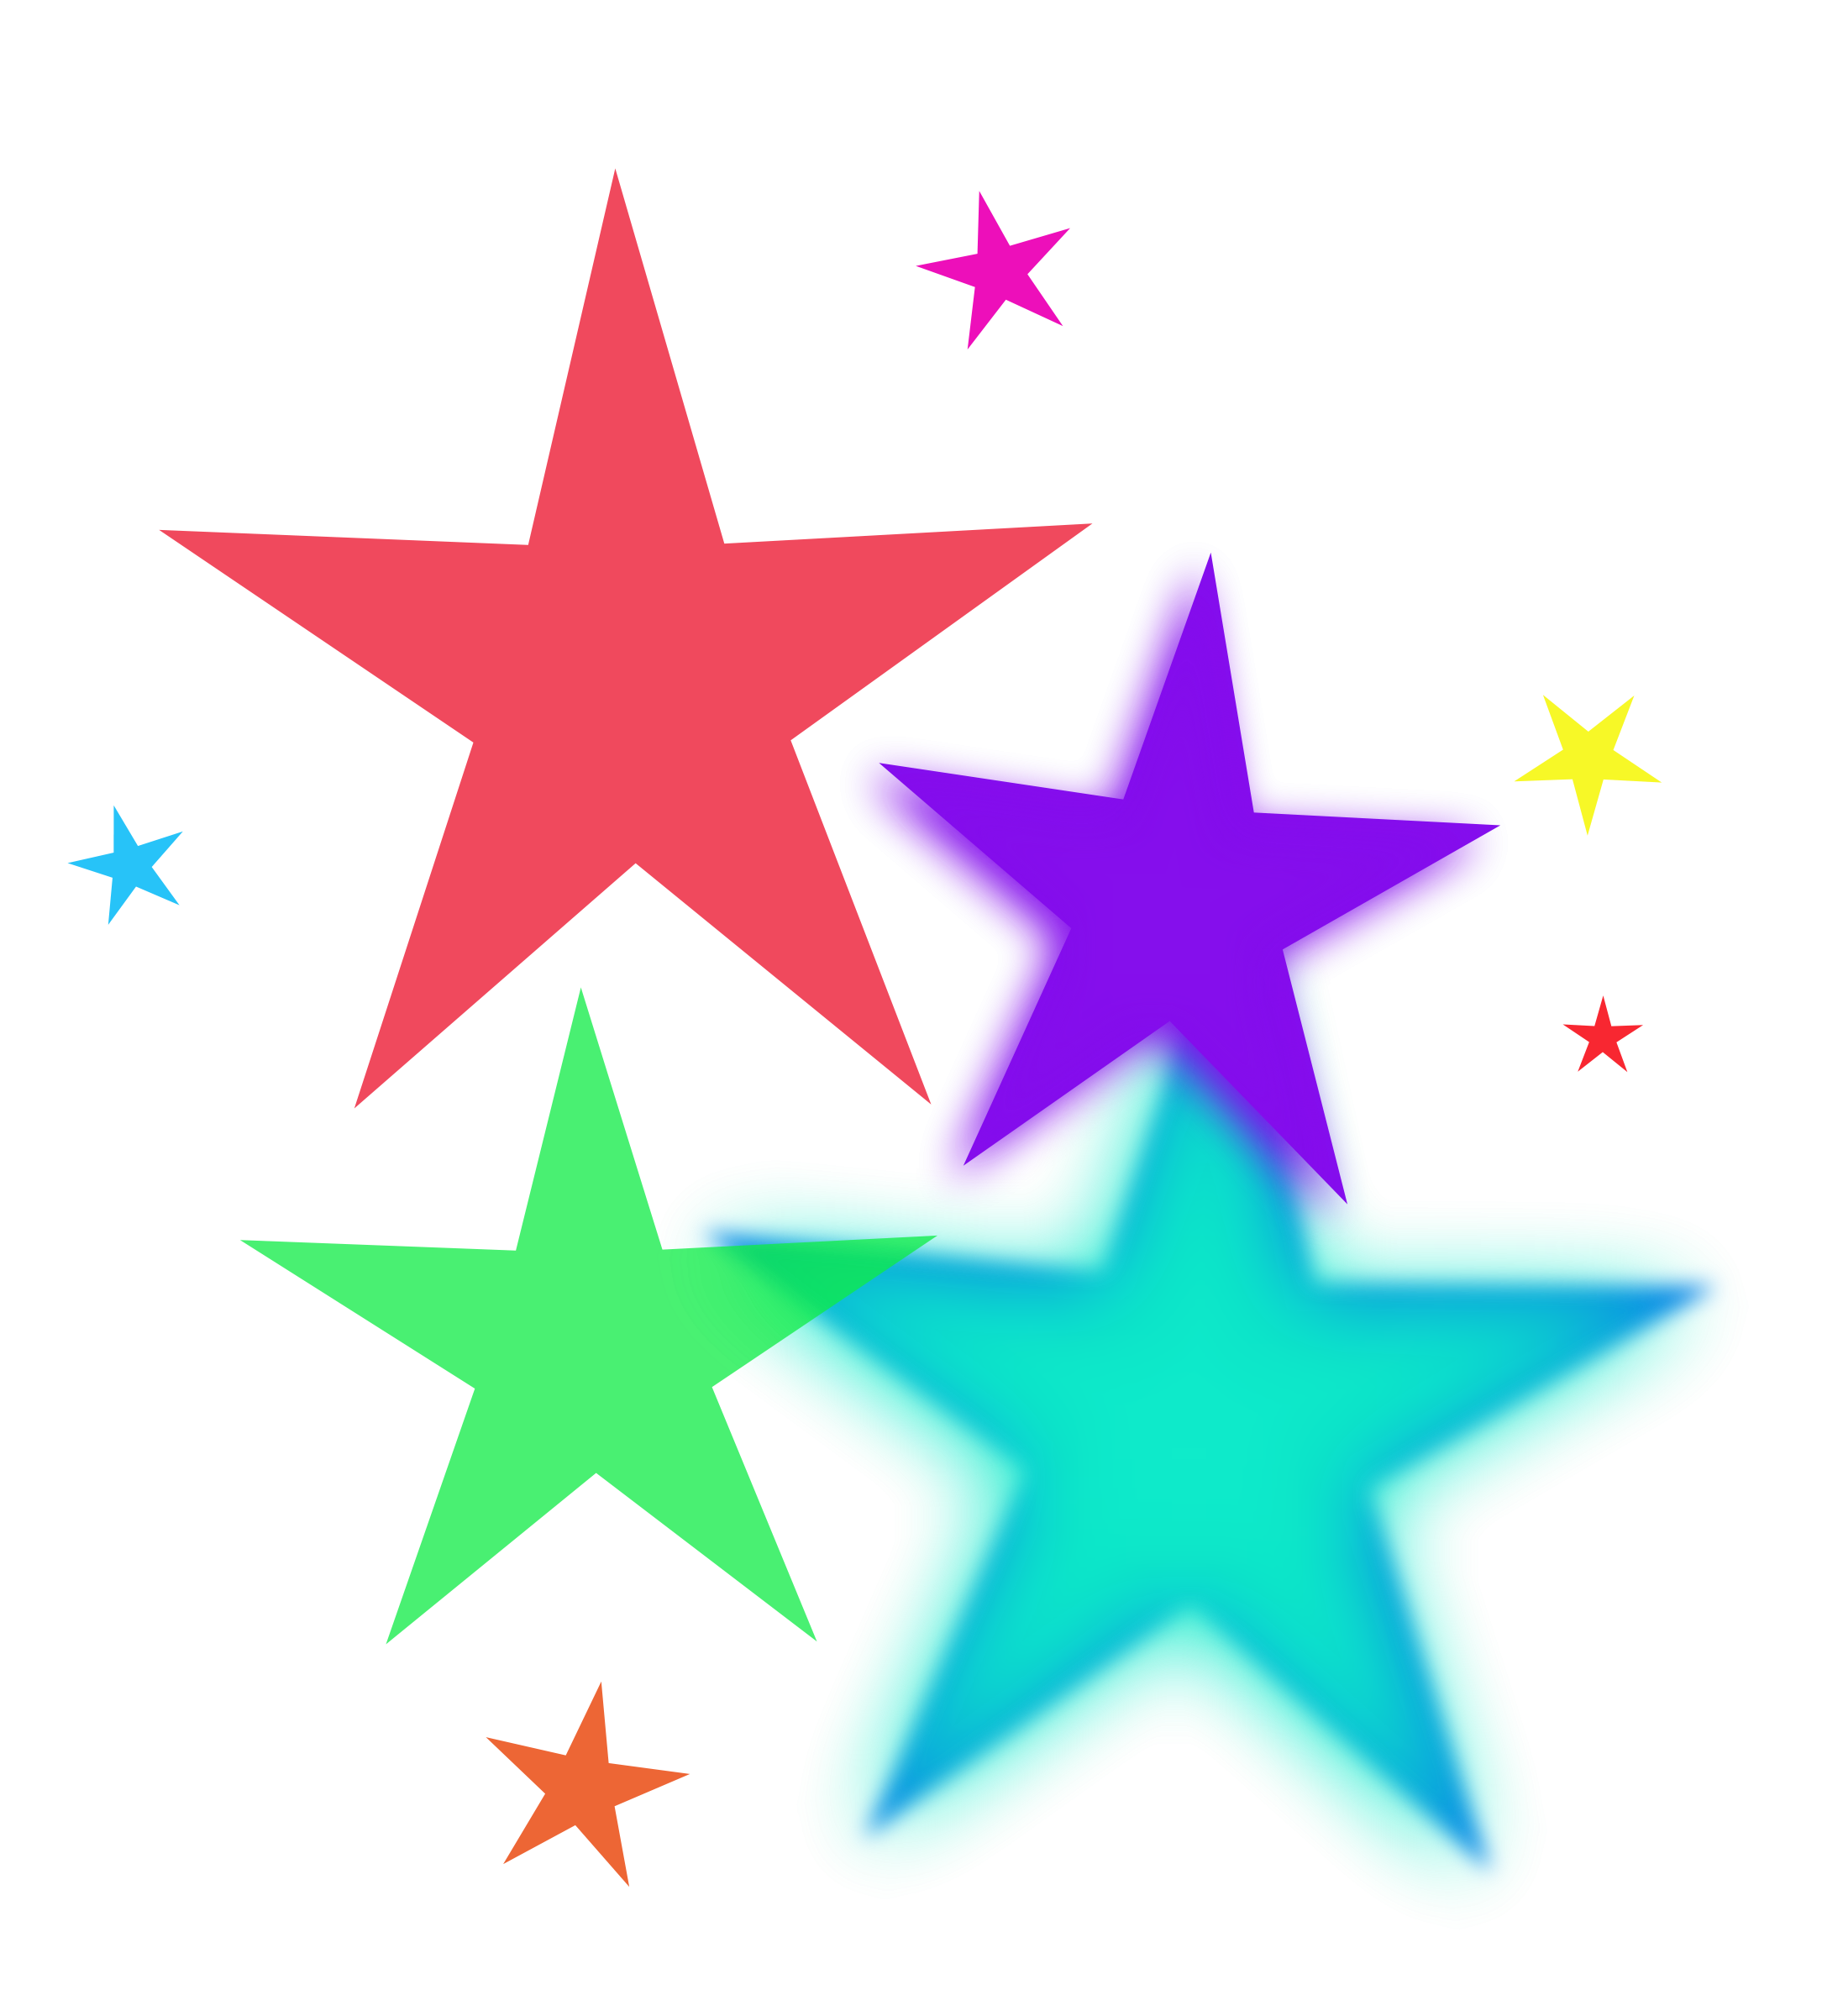 Colorful star clipart svg free download Colouful Clipart Shooting Star | jokingart.com Star Clipart svg free download